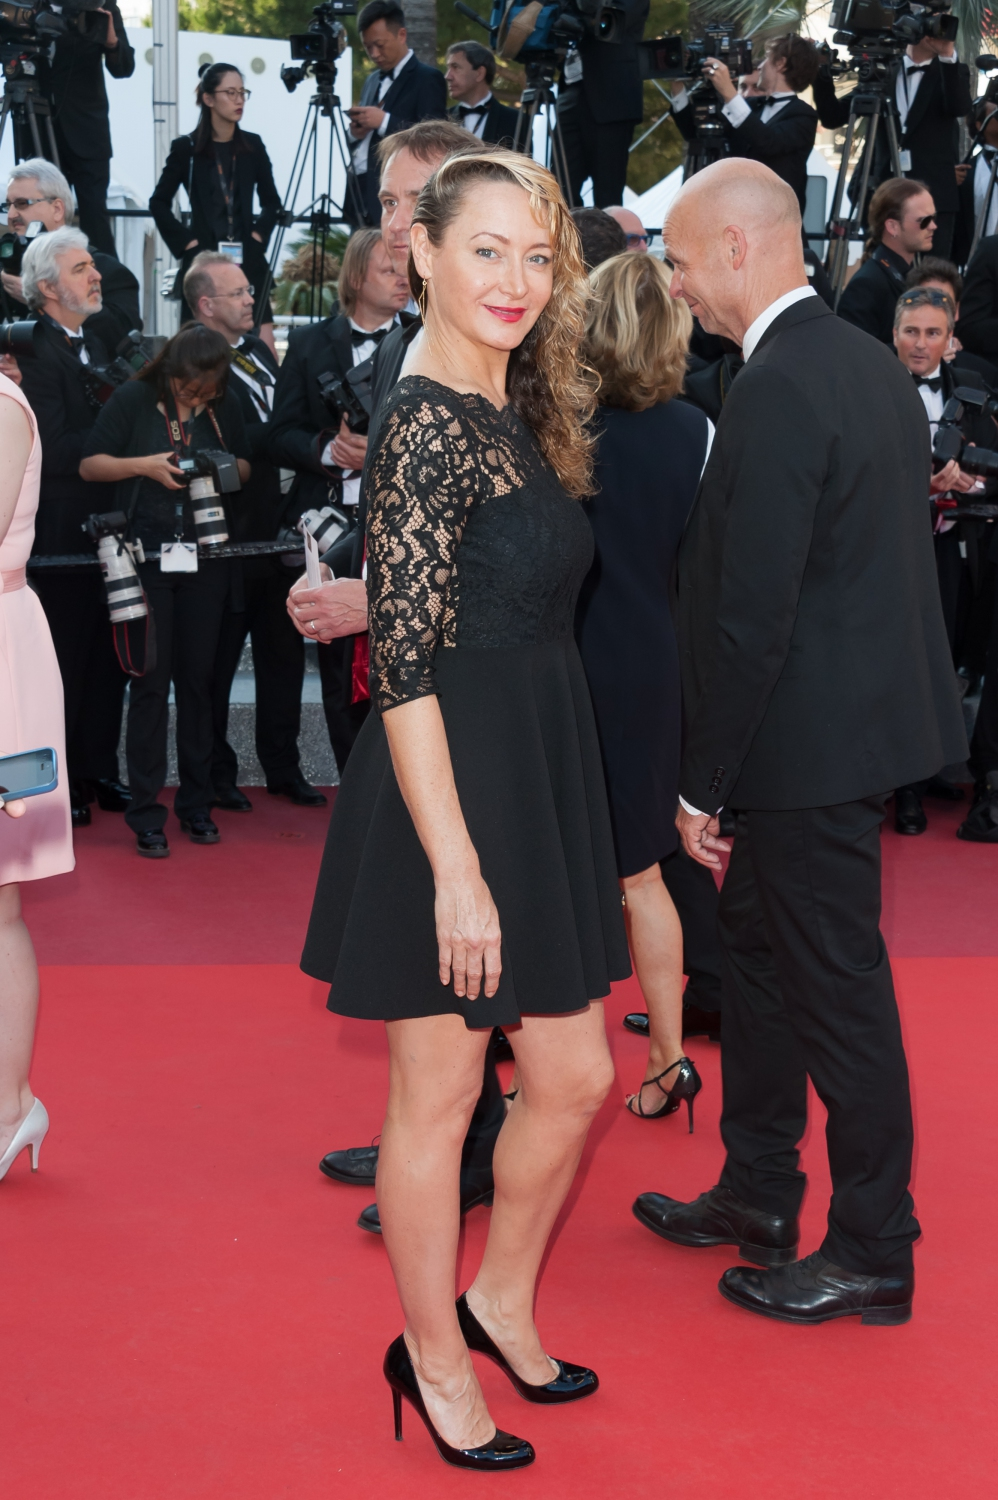 Personal Shopper Decoration Julie Ferrier - Cannes 2016 : De Karlie Kloss à Adriana